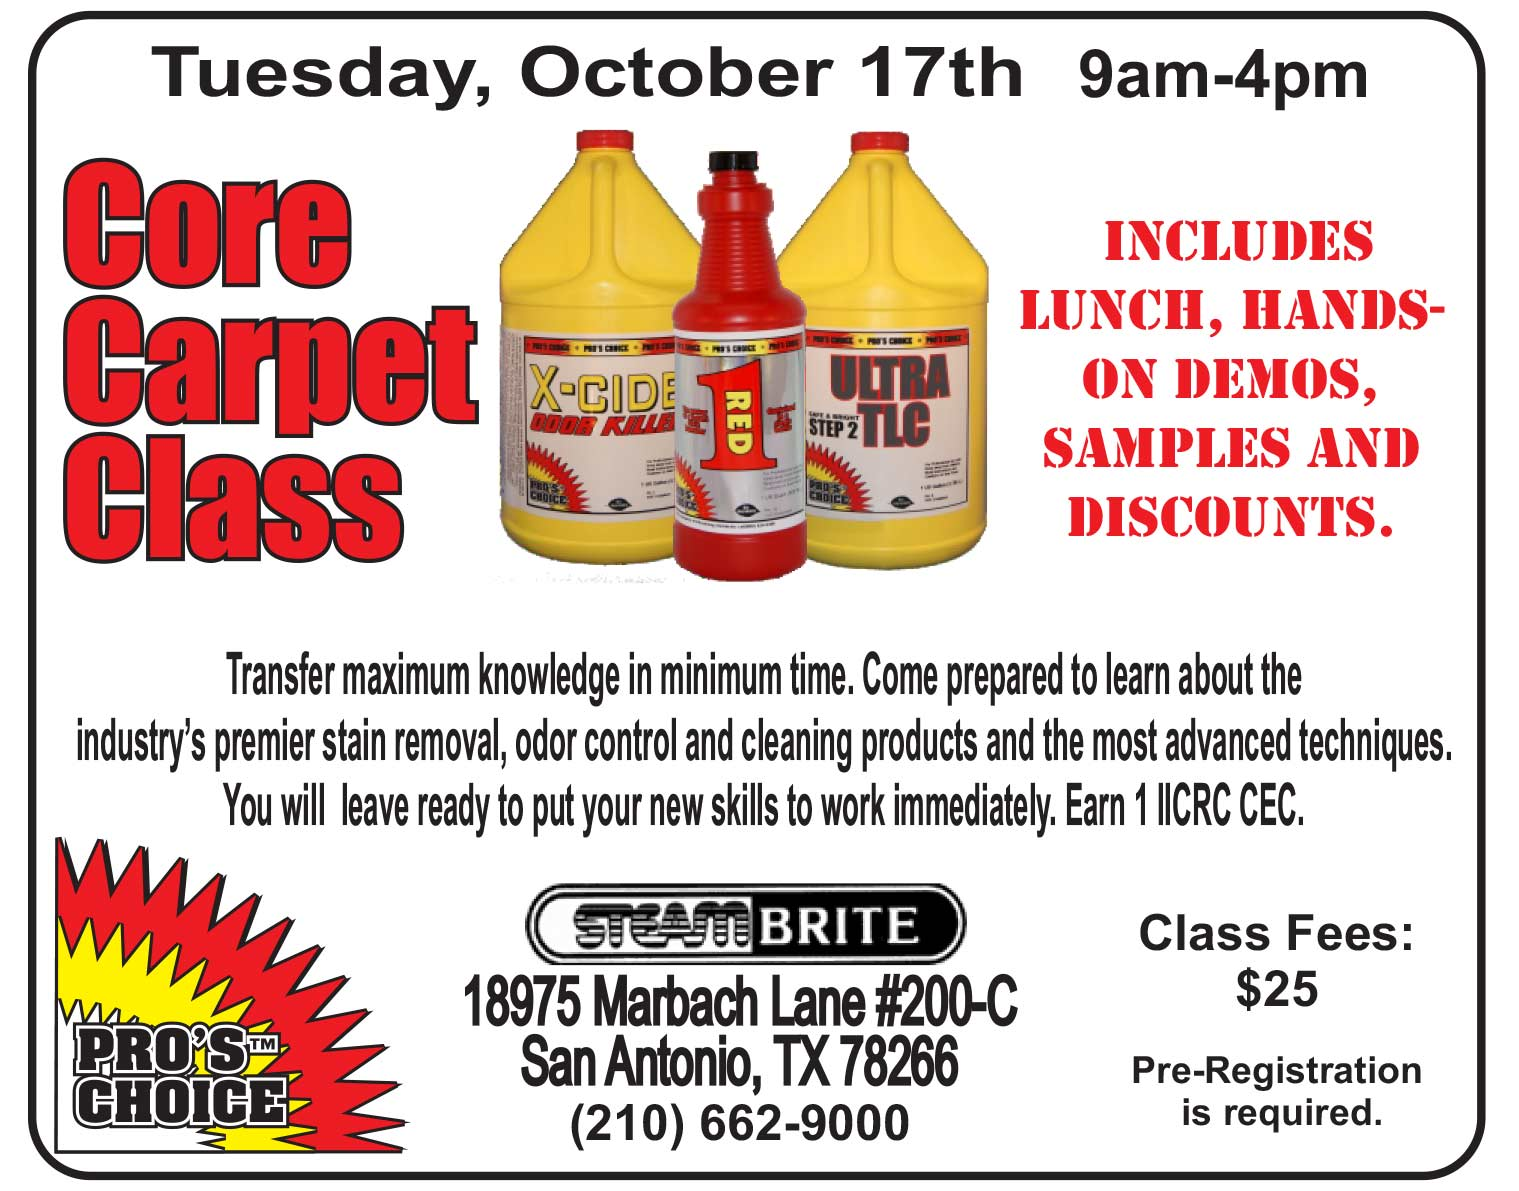 Steam Brite Supply Core Carpet Care and CTI-Basic Stain and Odor class 4.4.17 REGISTER NOW! SBMClass